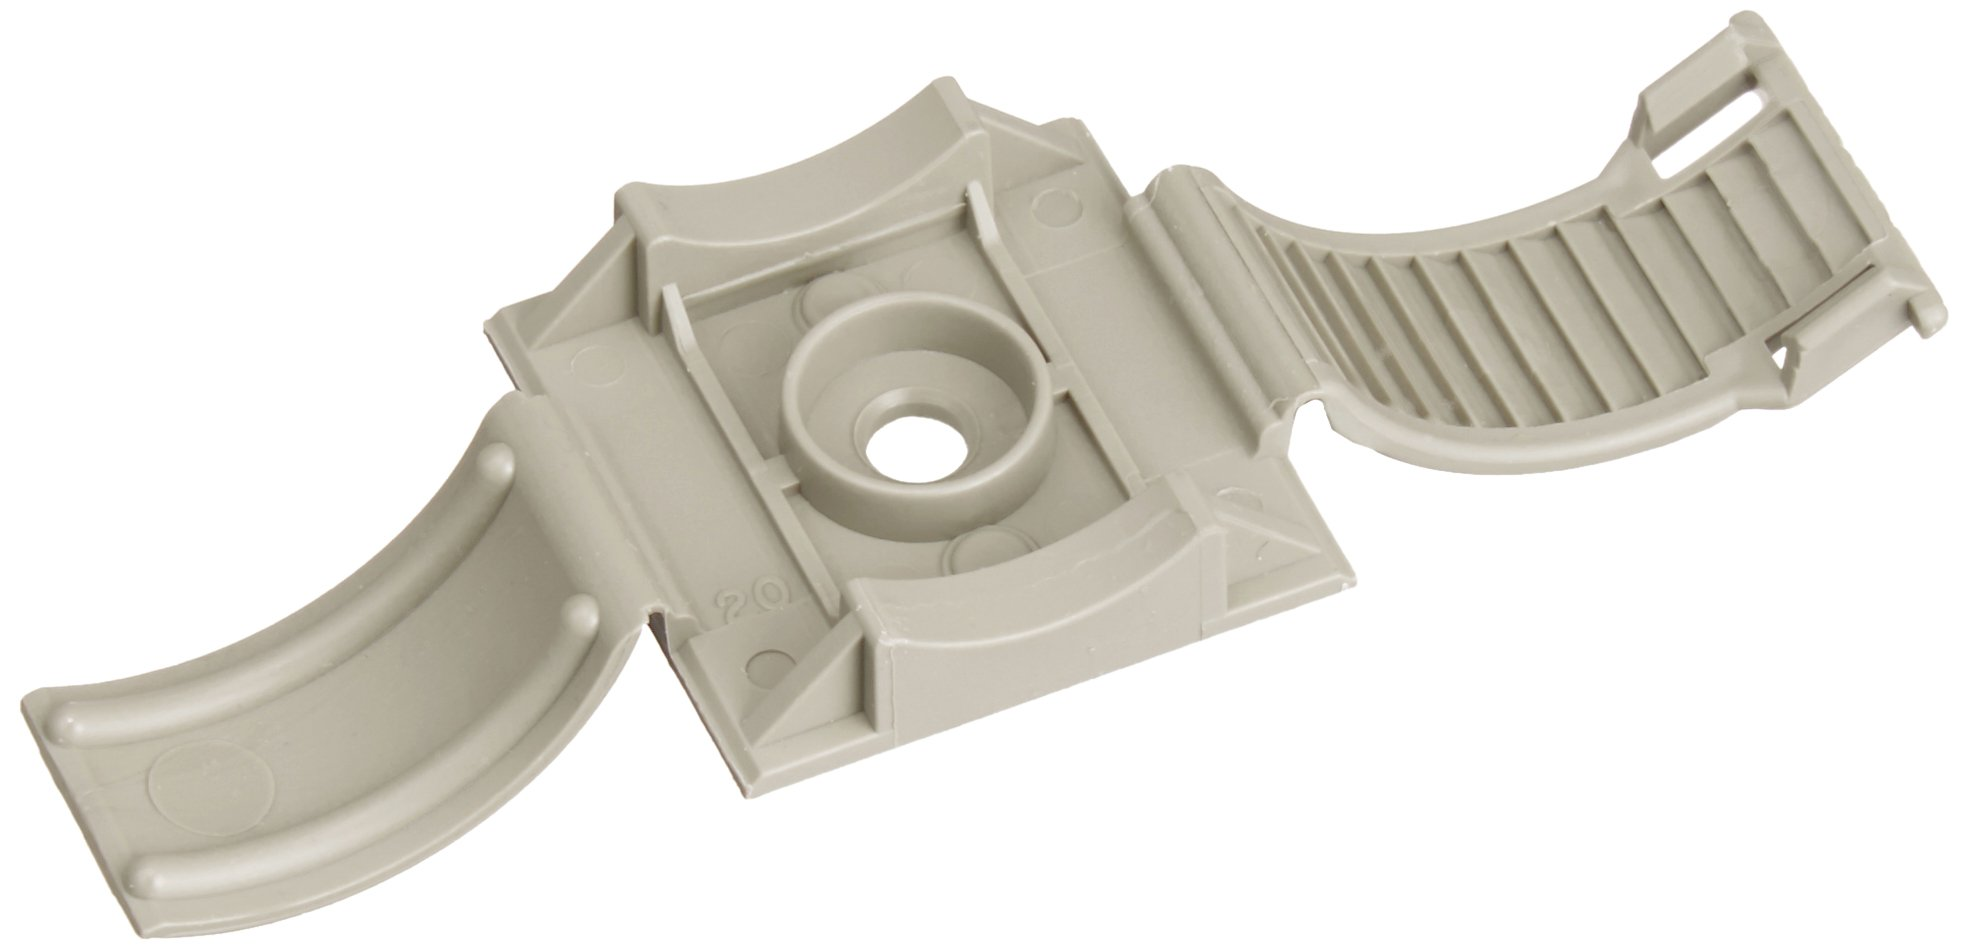 Panduit ARC.68-A-C14 Clincher Adhesive Backed Adjustable Releasable Clamp, Polypropylene, Gray (100-Pack)